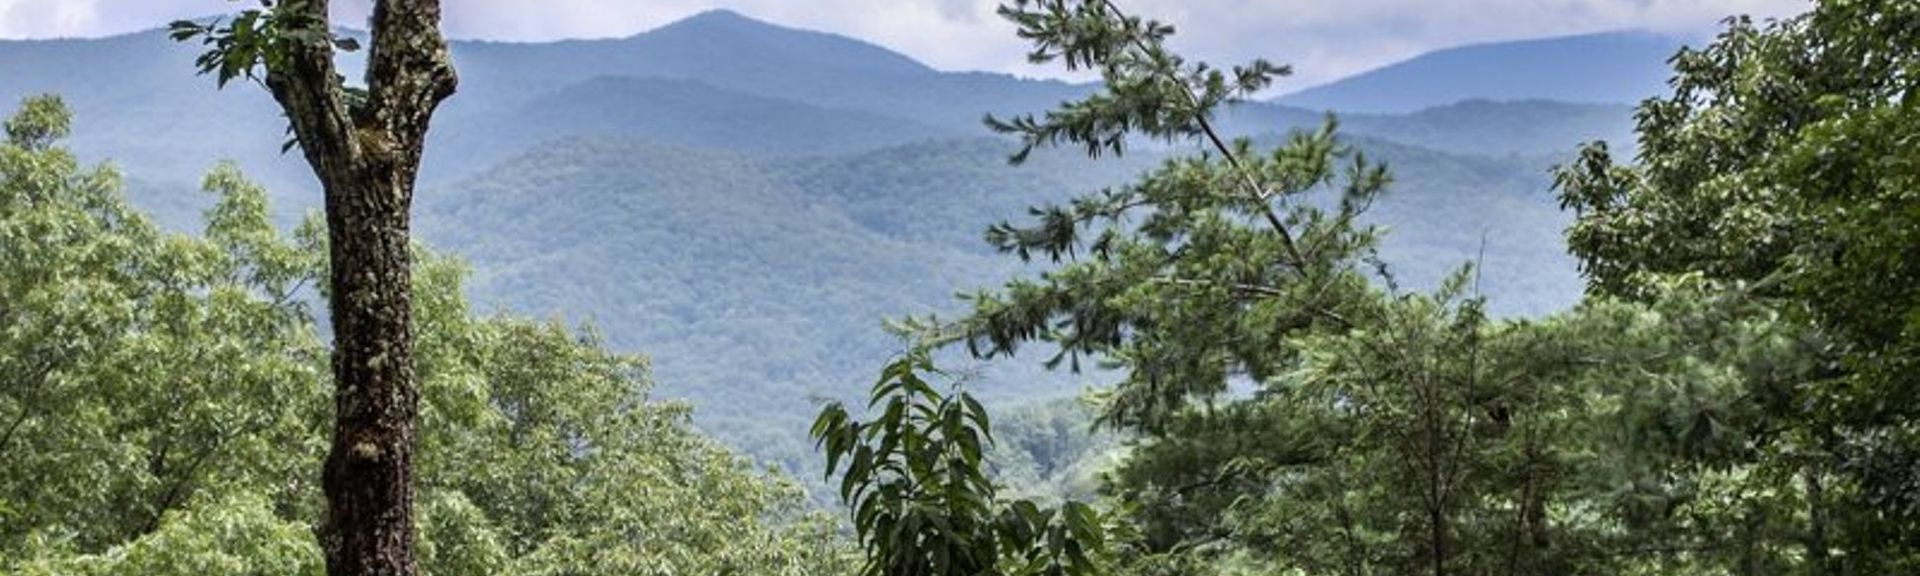 Chattahoochee National Forest, US holiday lettings for 2019